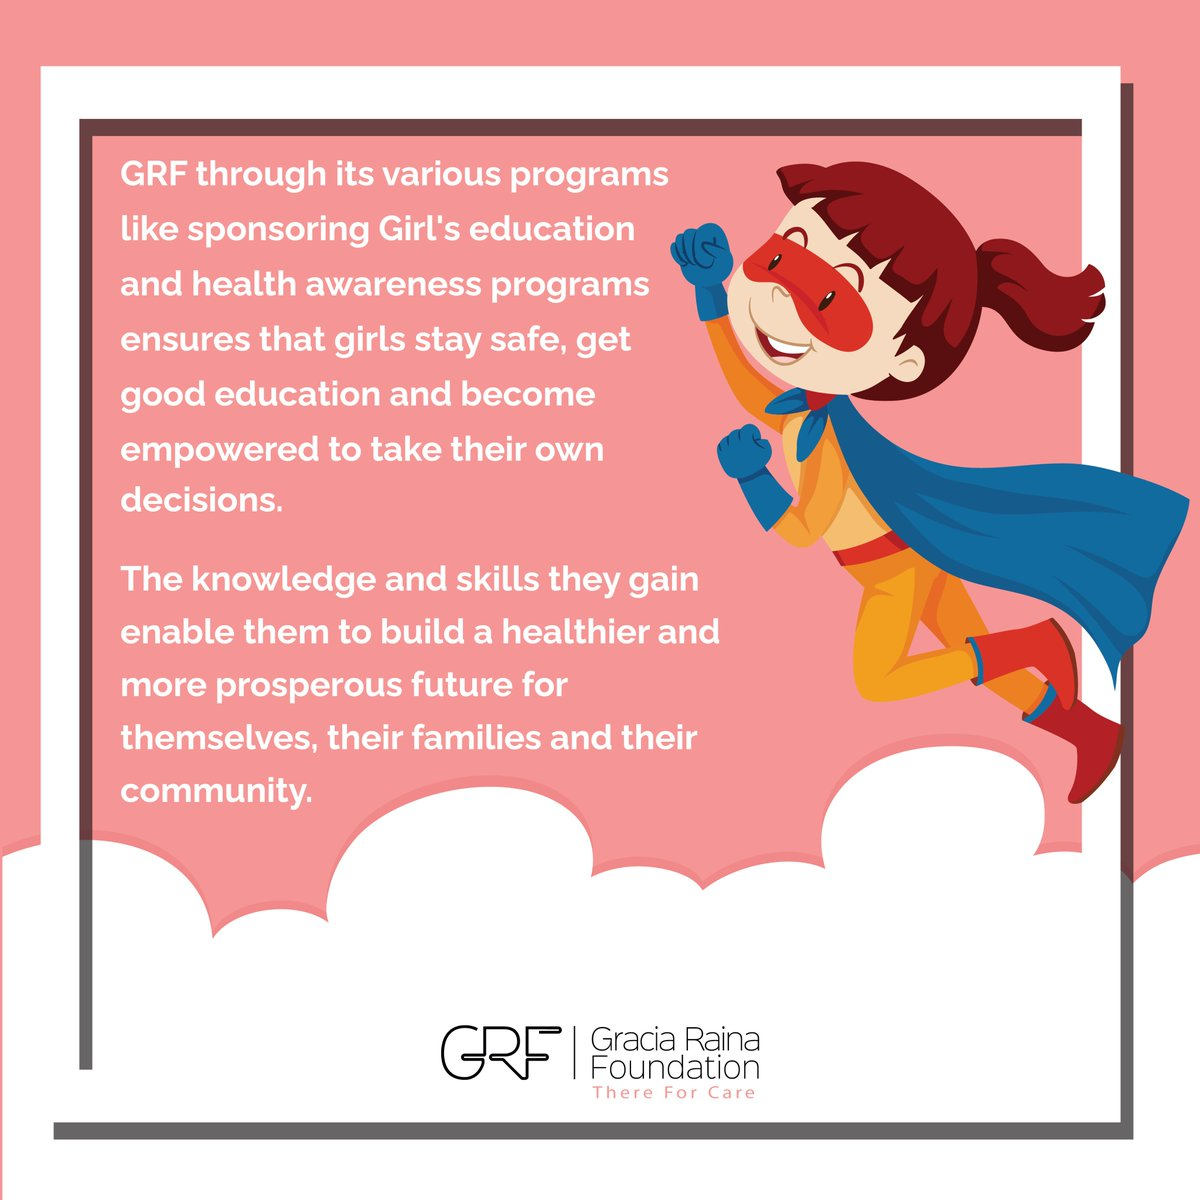 Girls are pillars of society, let's give them a voice by empowering them and let's keep doing our bit until every girl has the opportunity she deserves to have. #InternationalDayOfGirlChild